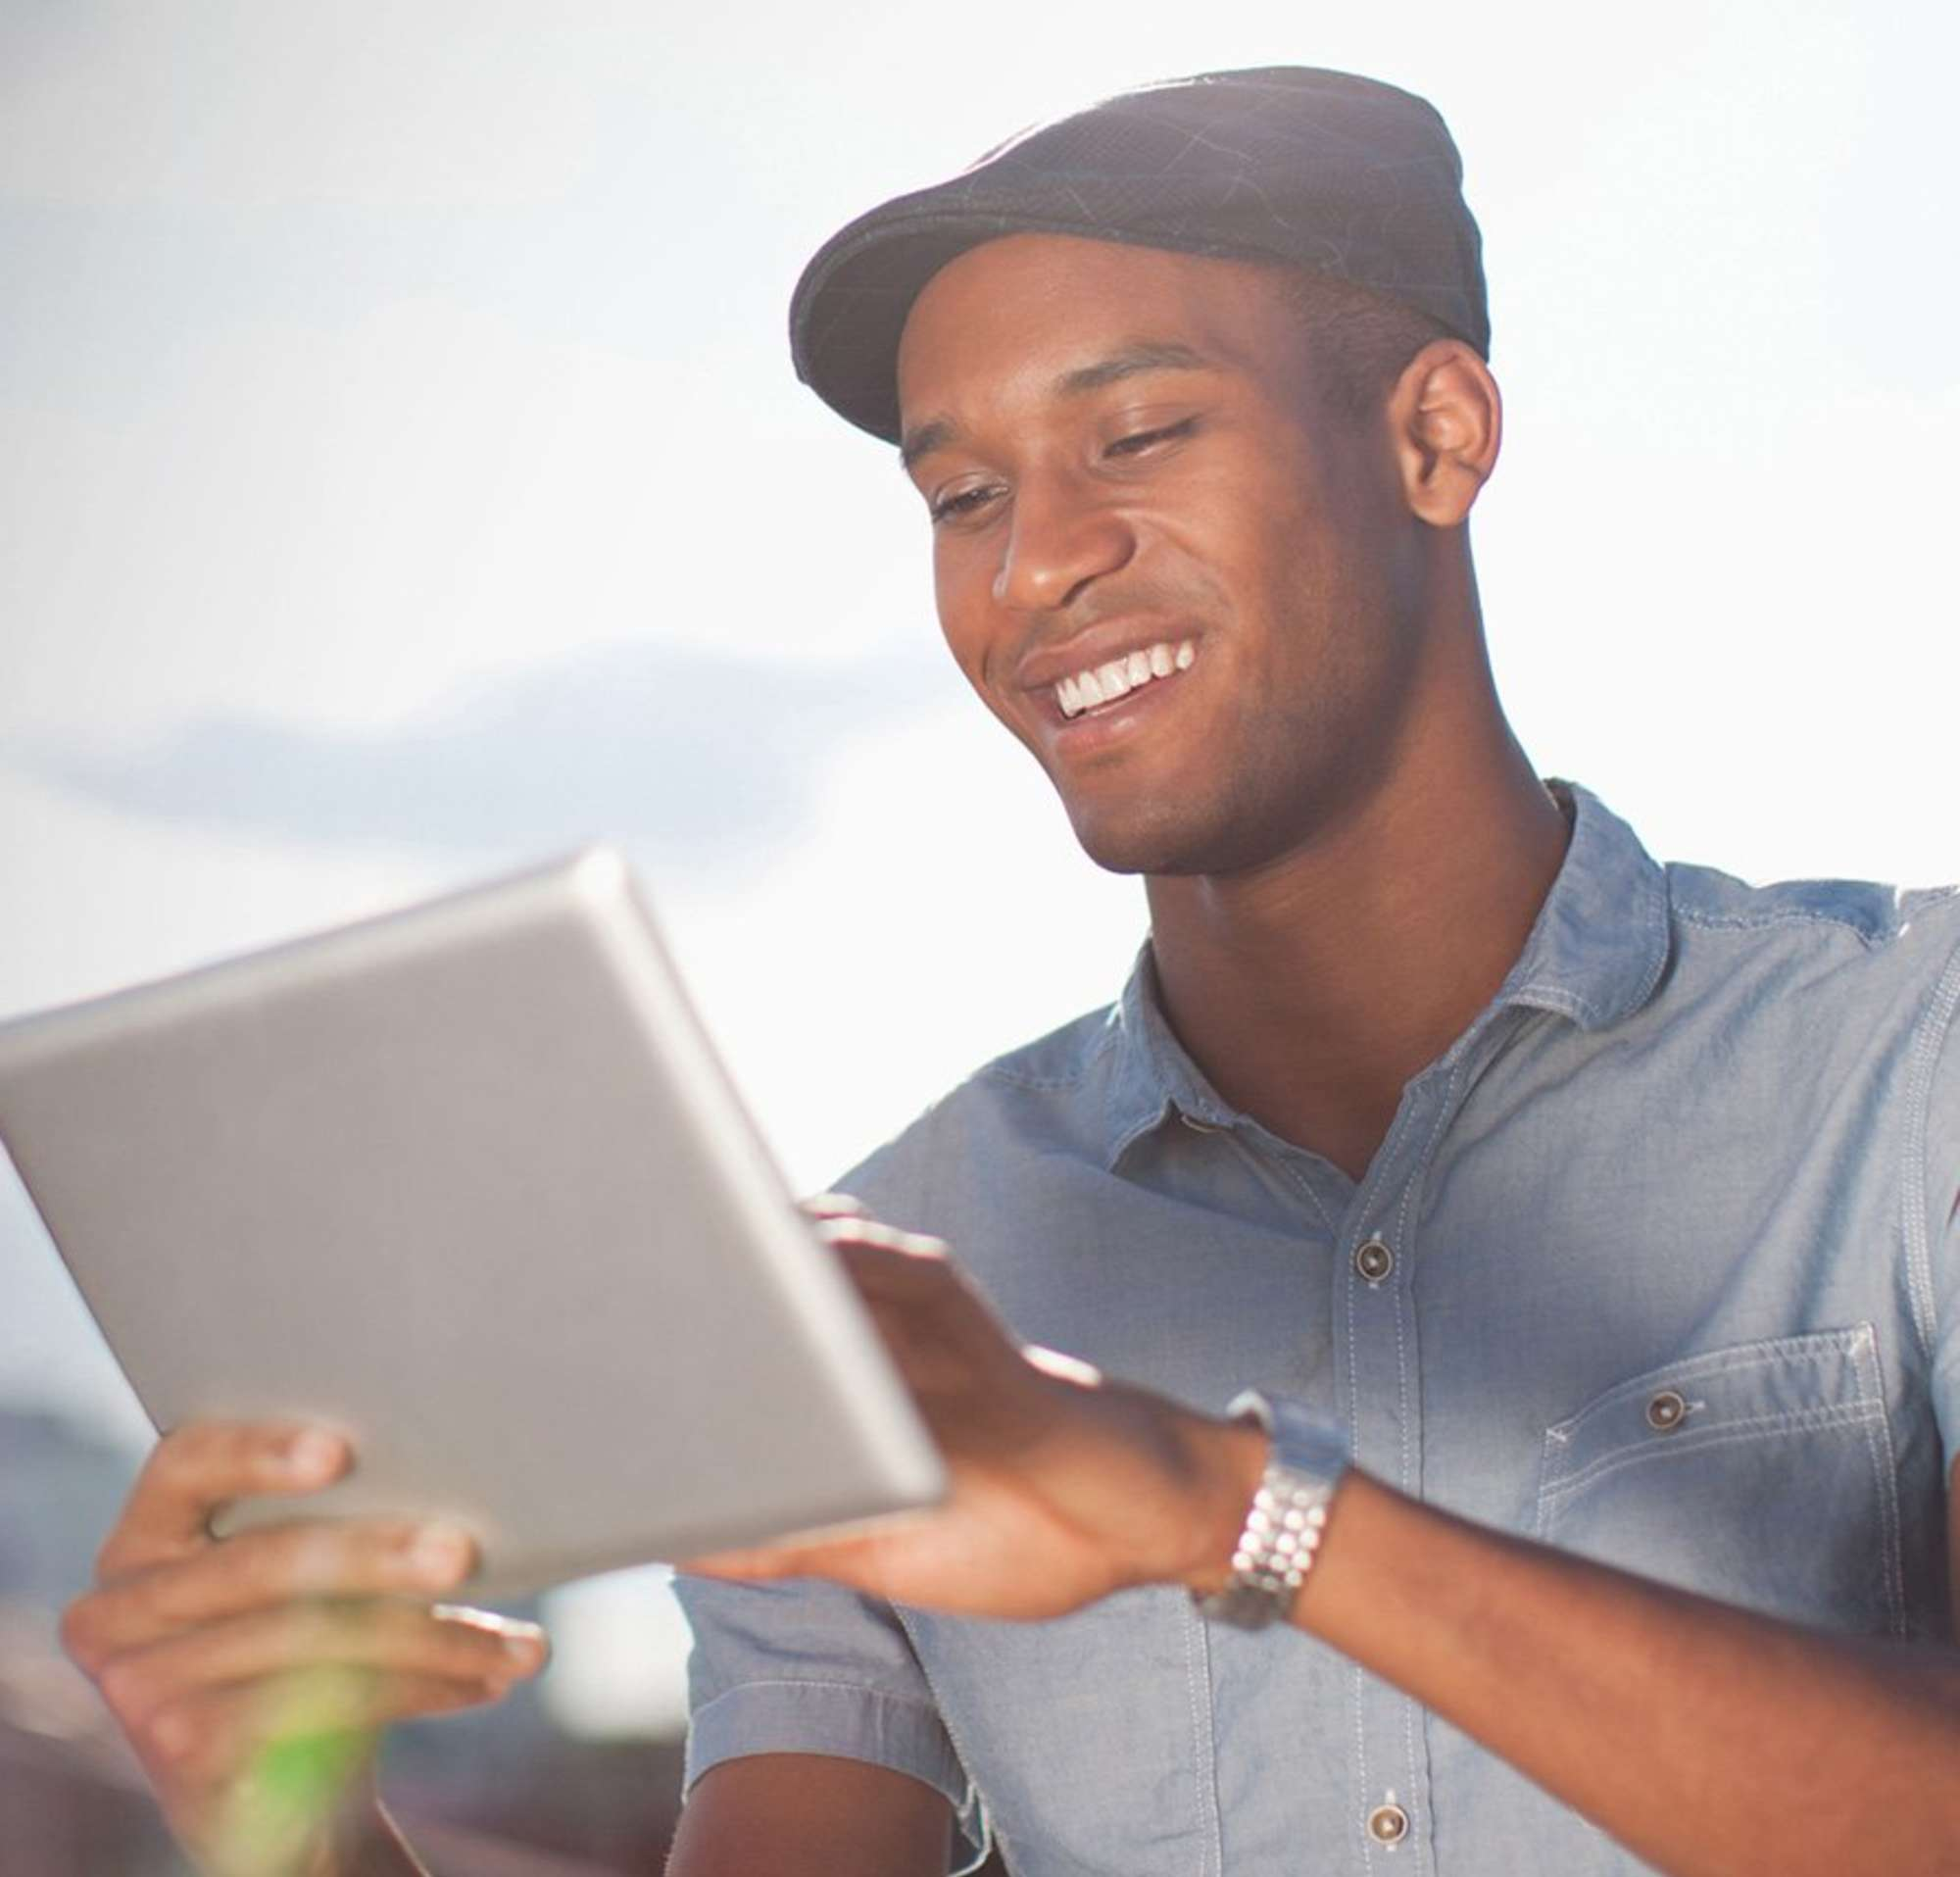 Electronically Sign Documents Online